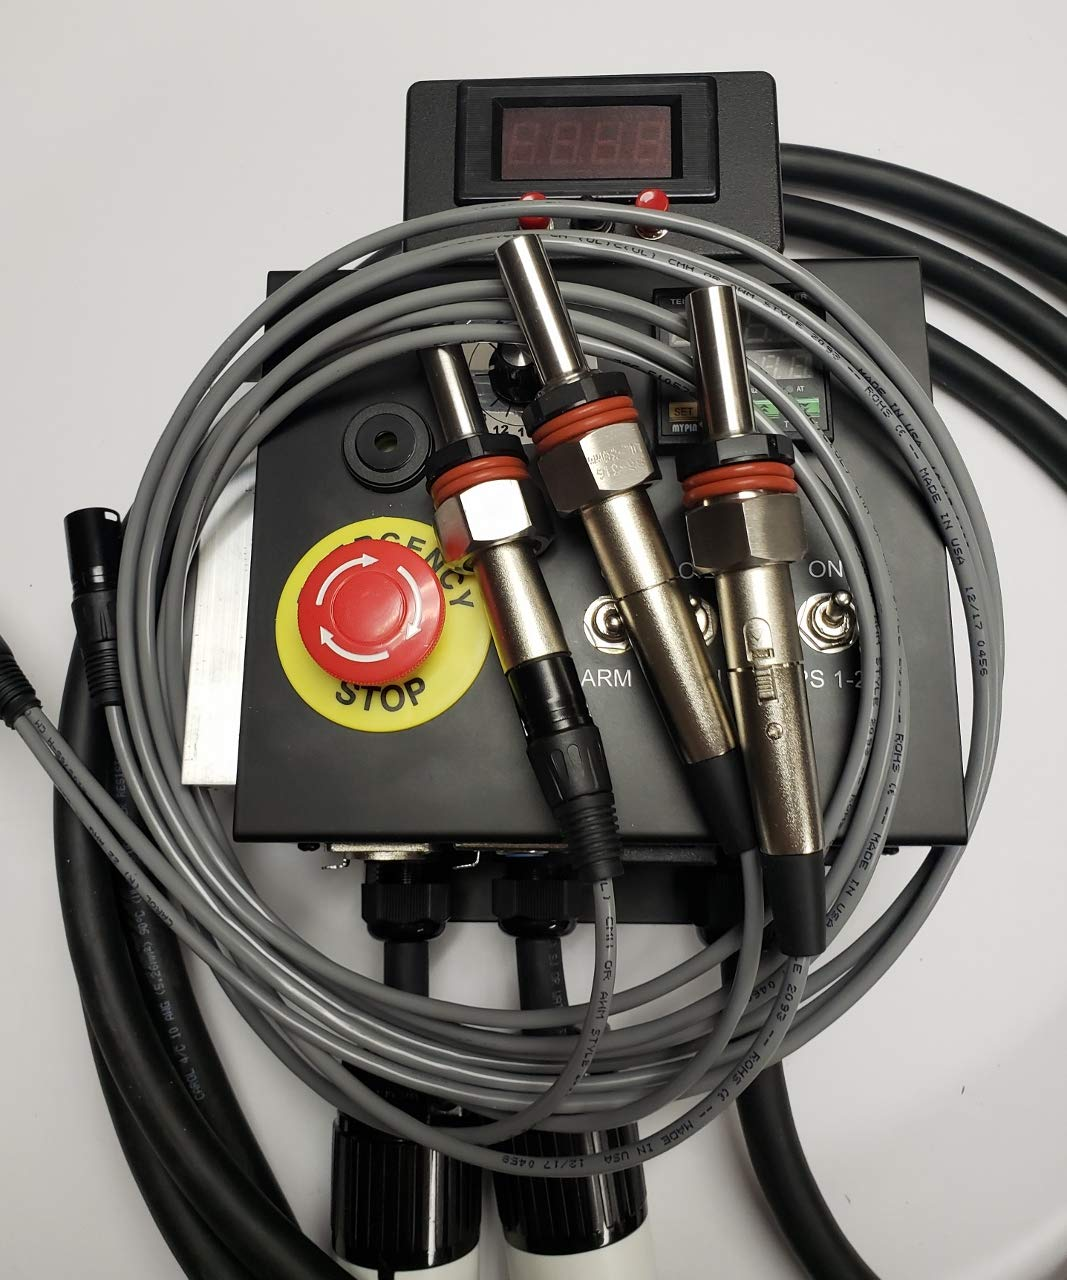 240v HERMS II (Heat Exchanged Recirculating Mash System) Home Brewery Controller by BREW-CONTROL (Image #8)